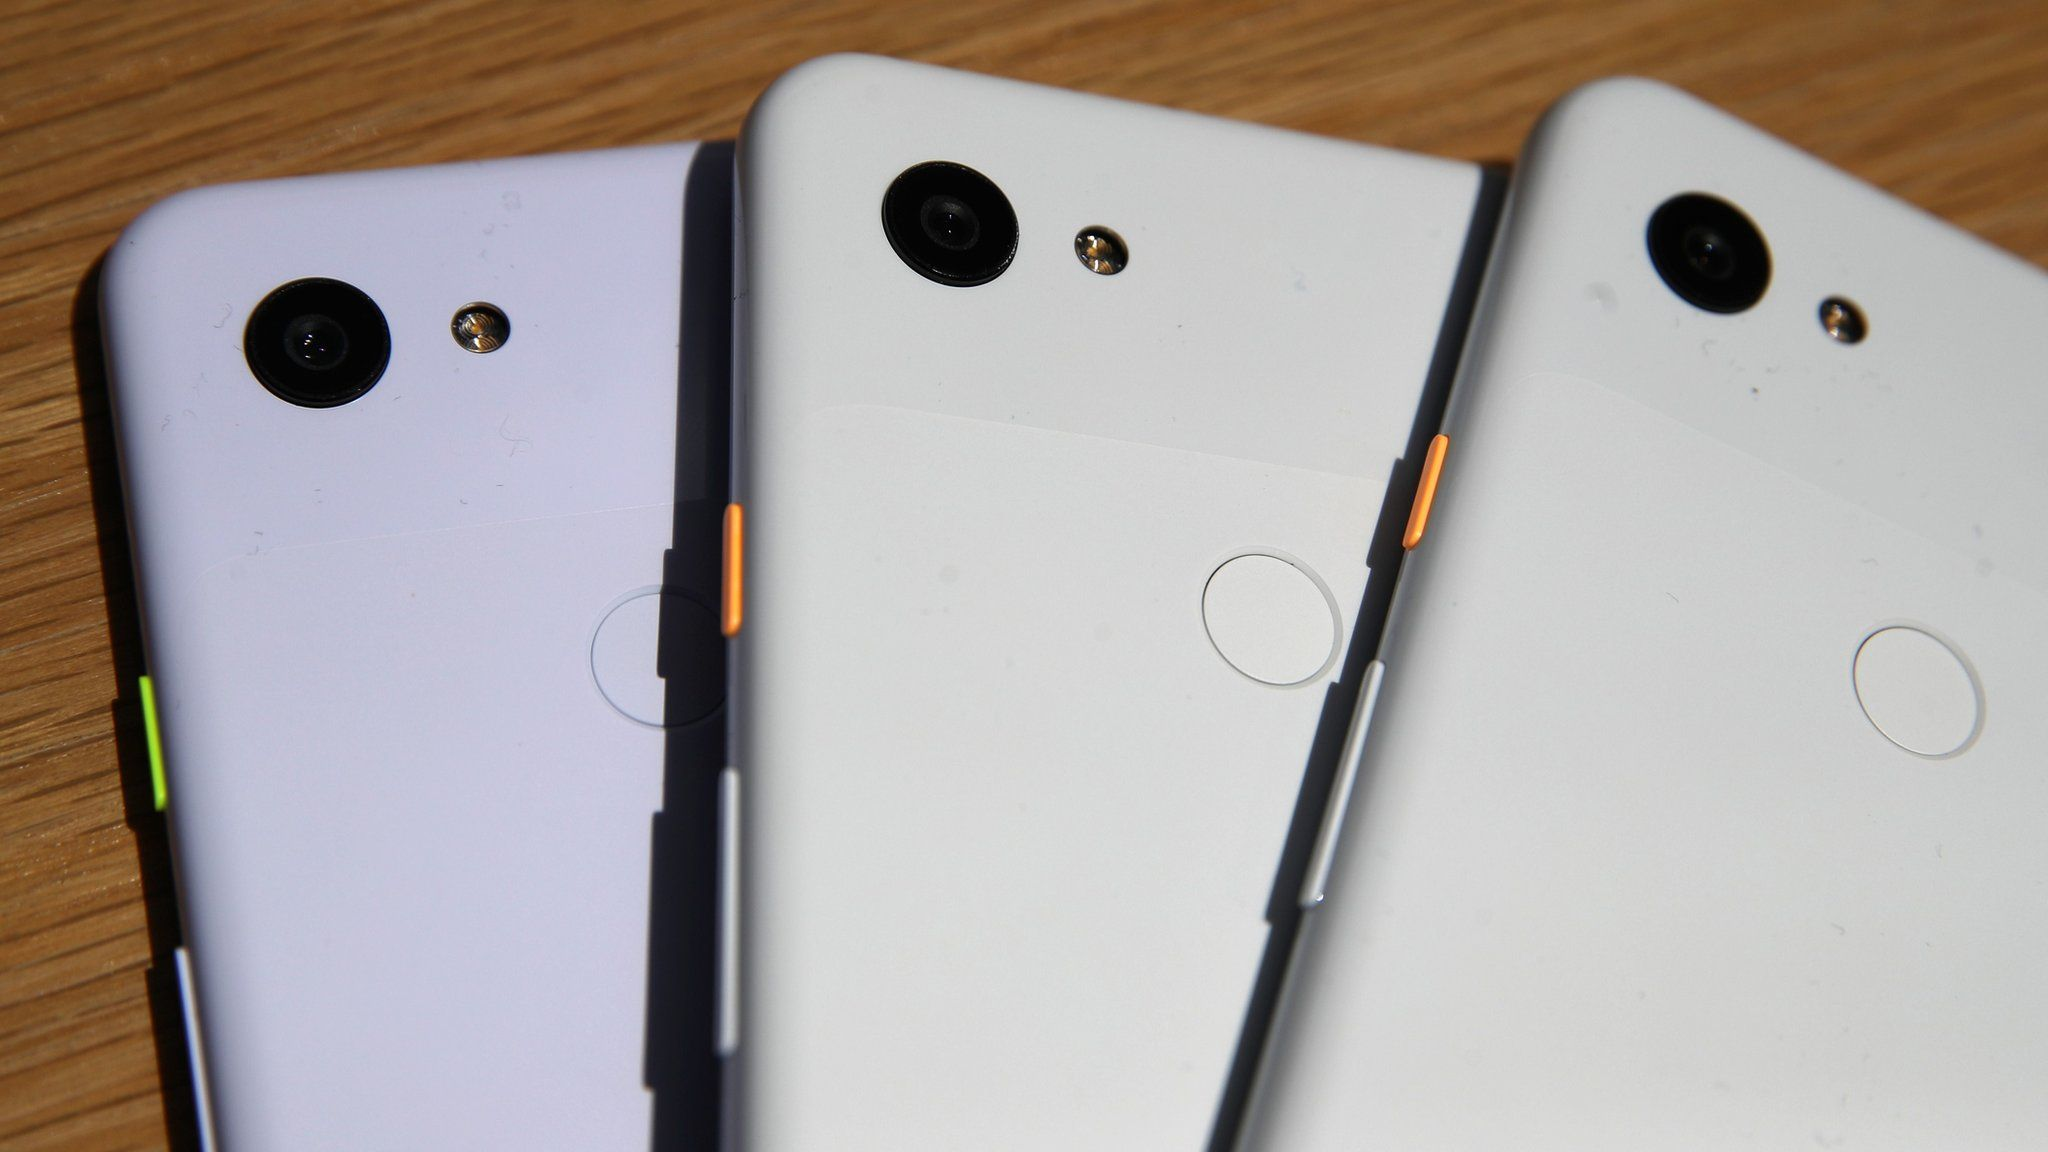 Pixel 4 seeks to reclaim low-light photography crown for